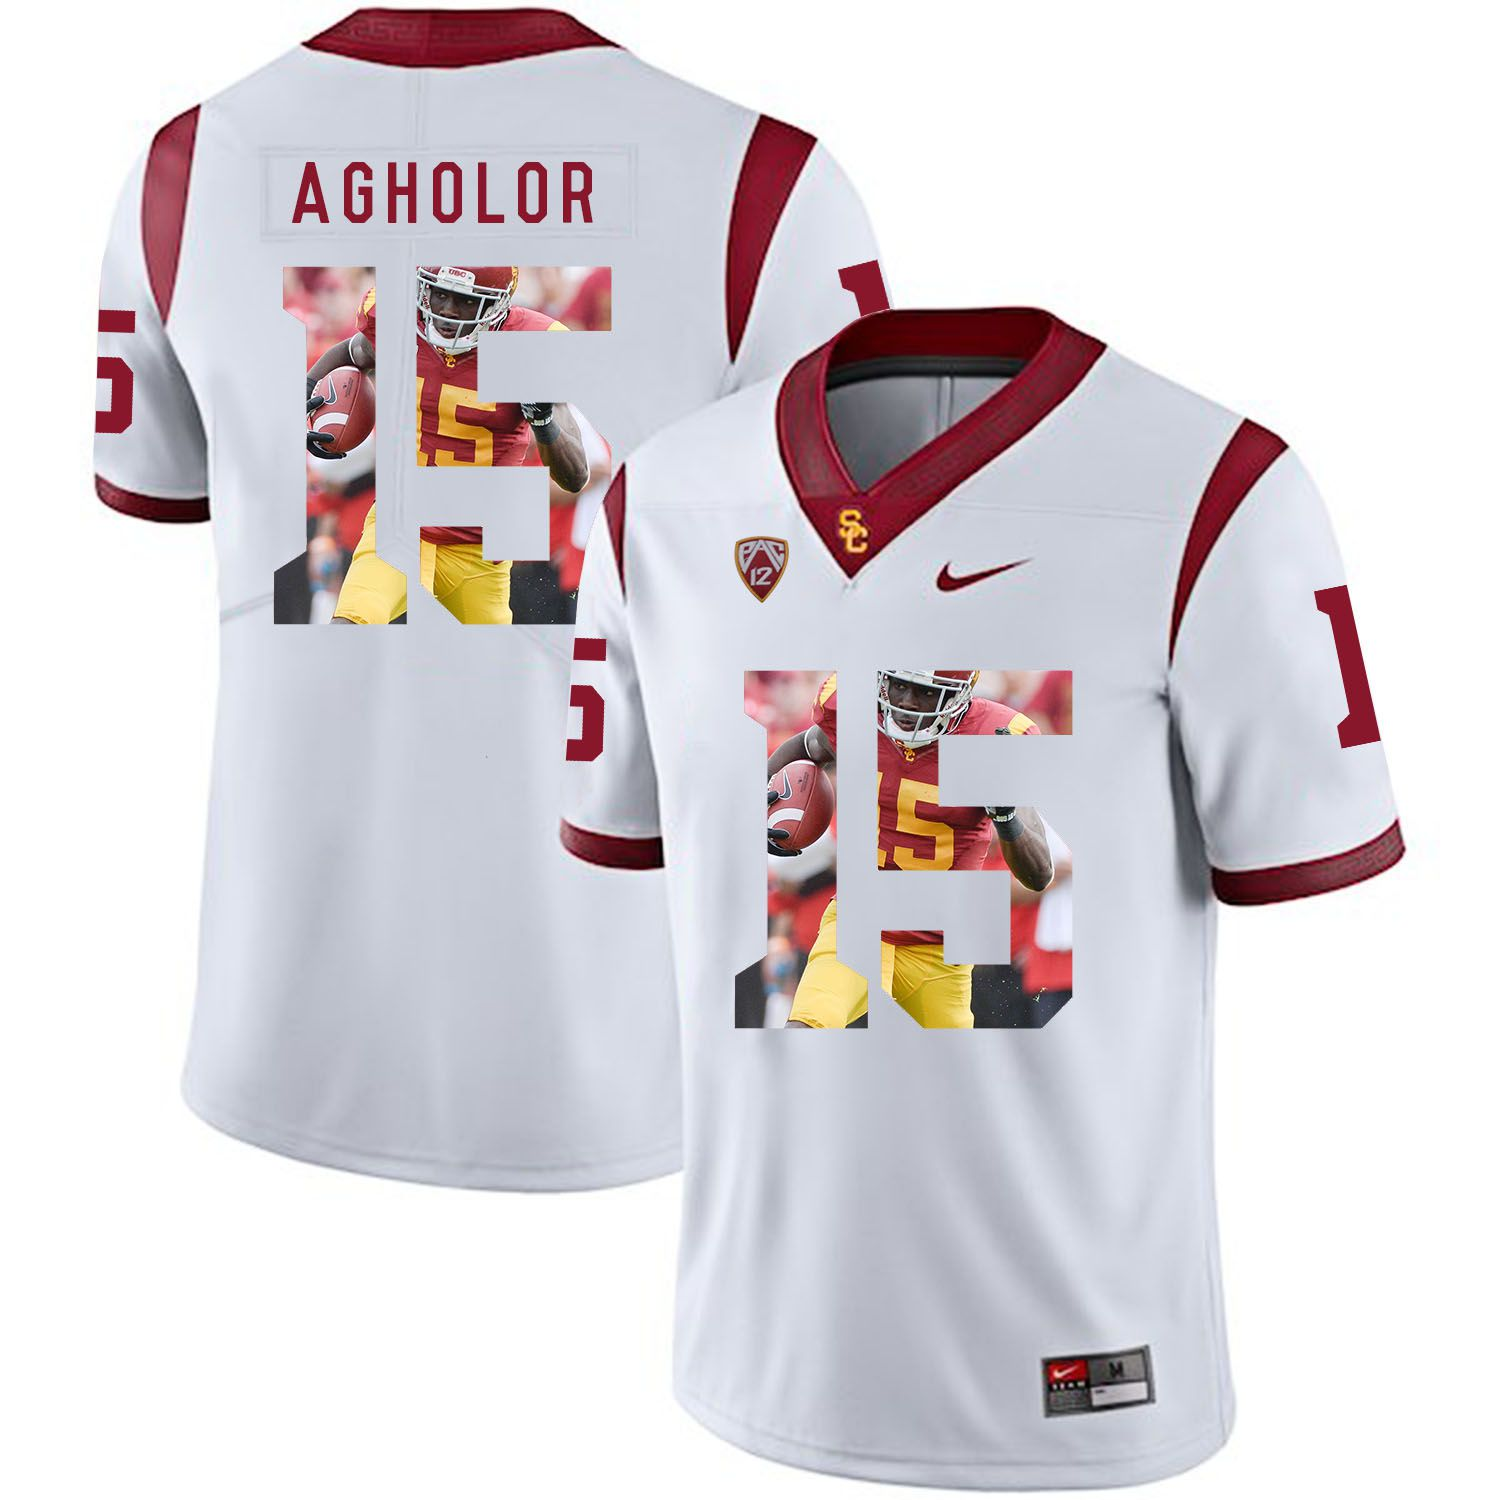 Men USC Trojans 15 Agholor White Fashion Edition Customized NCAA Jerseys